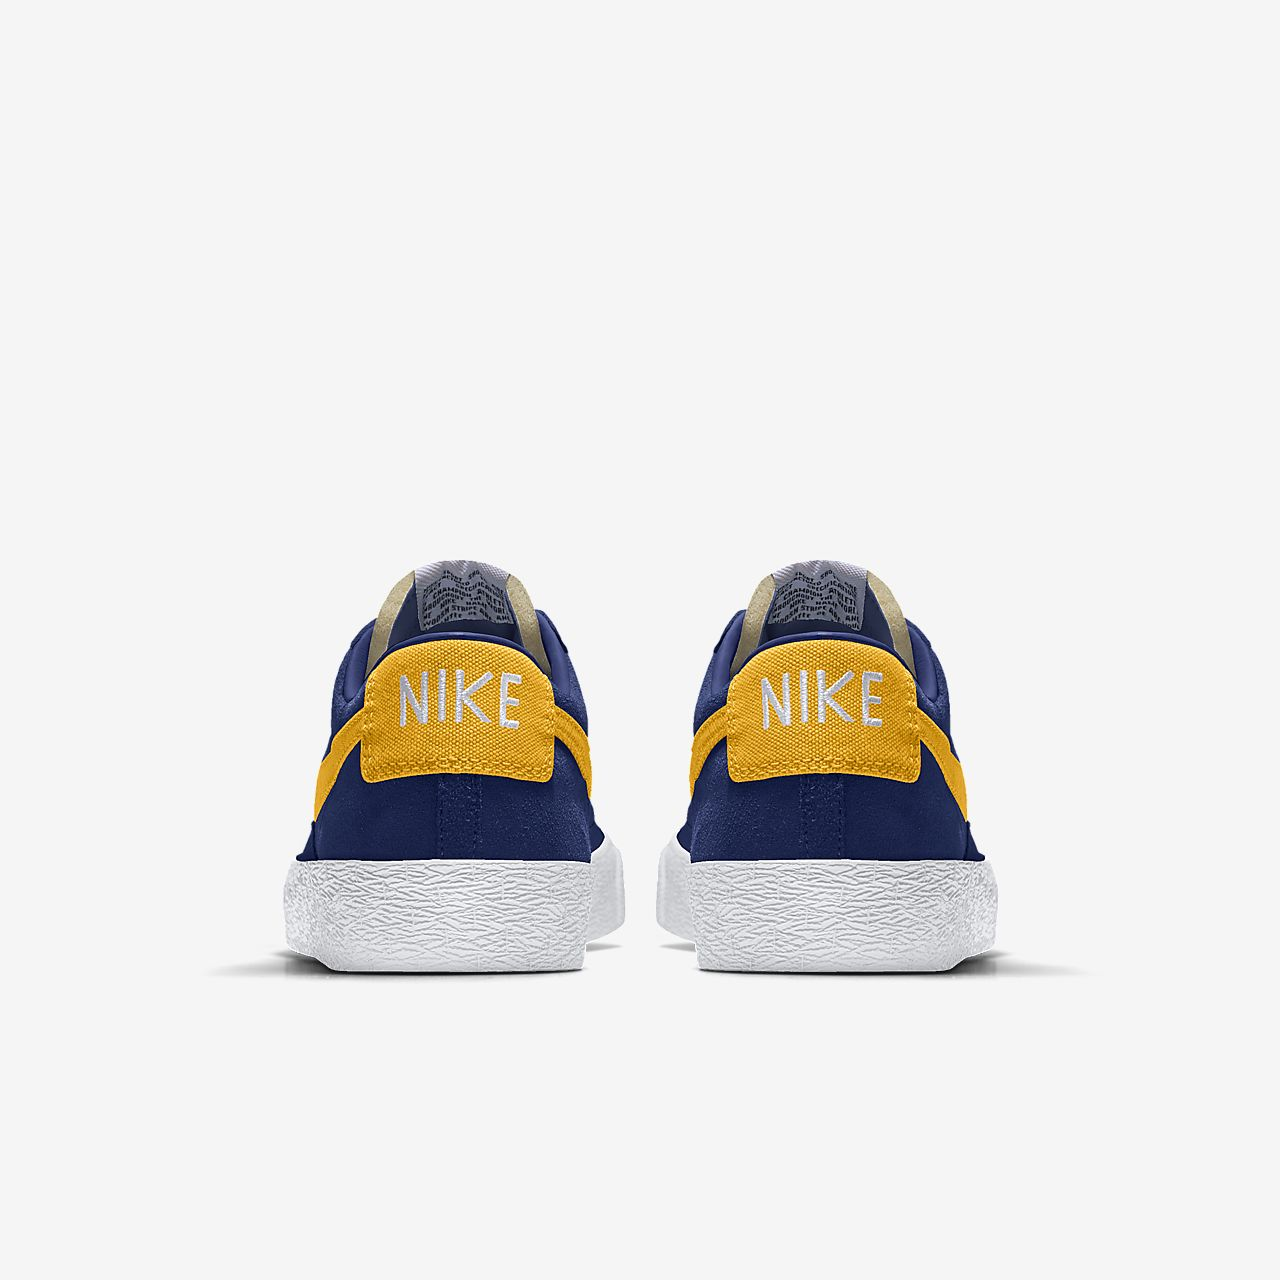 Chaussure personnalisable Nike Blazer Low By You pour Homme